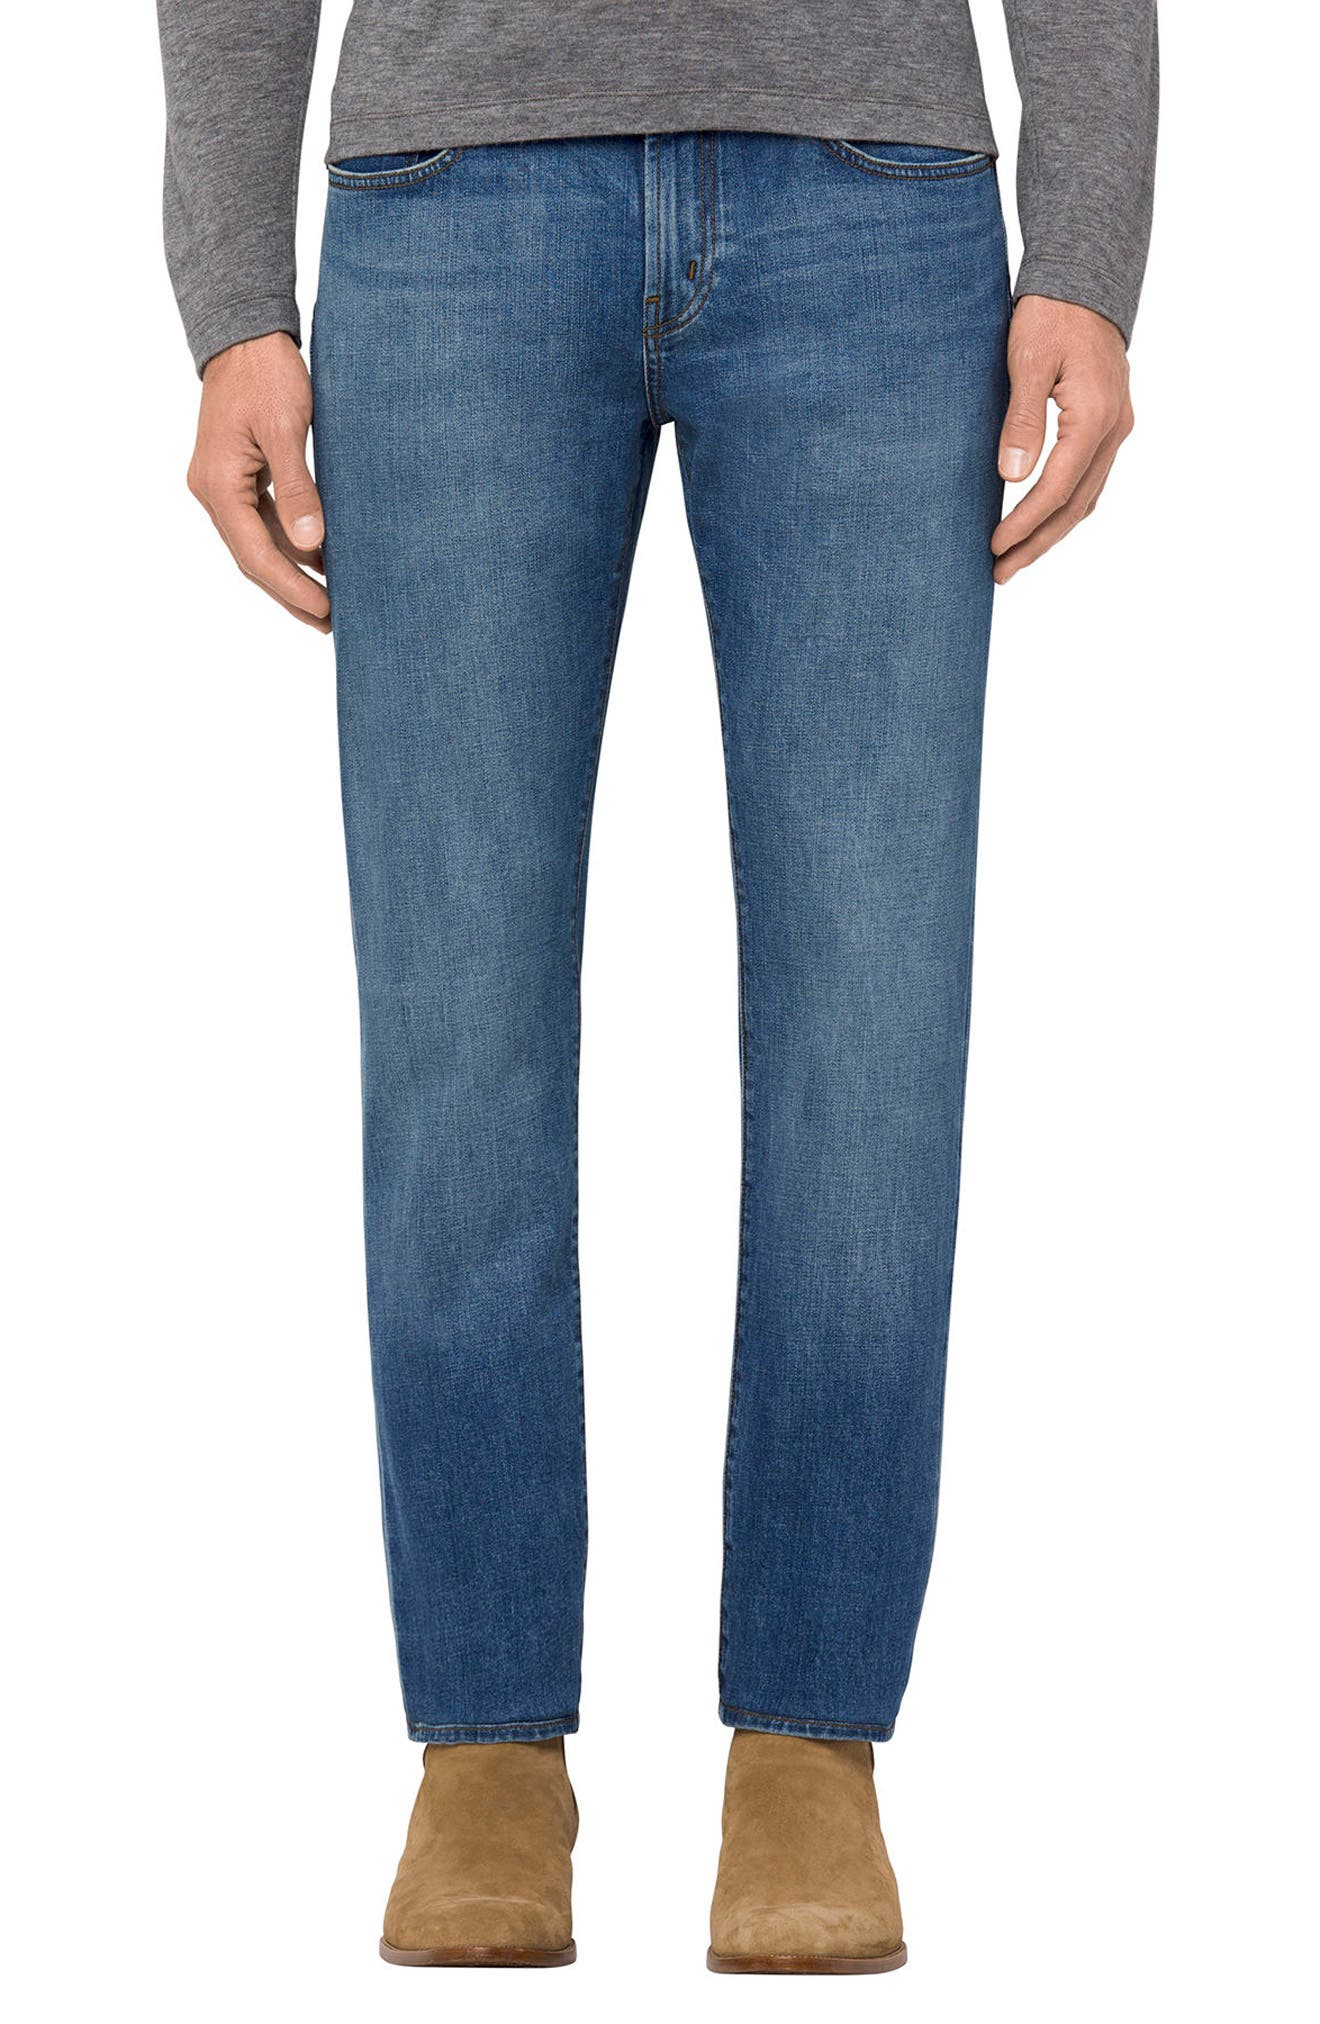 J BRAND,                             Tyler Slim Fit Jeans,                             Main thumbnail 1, color,                             420